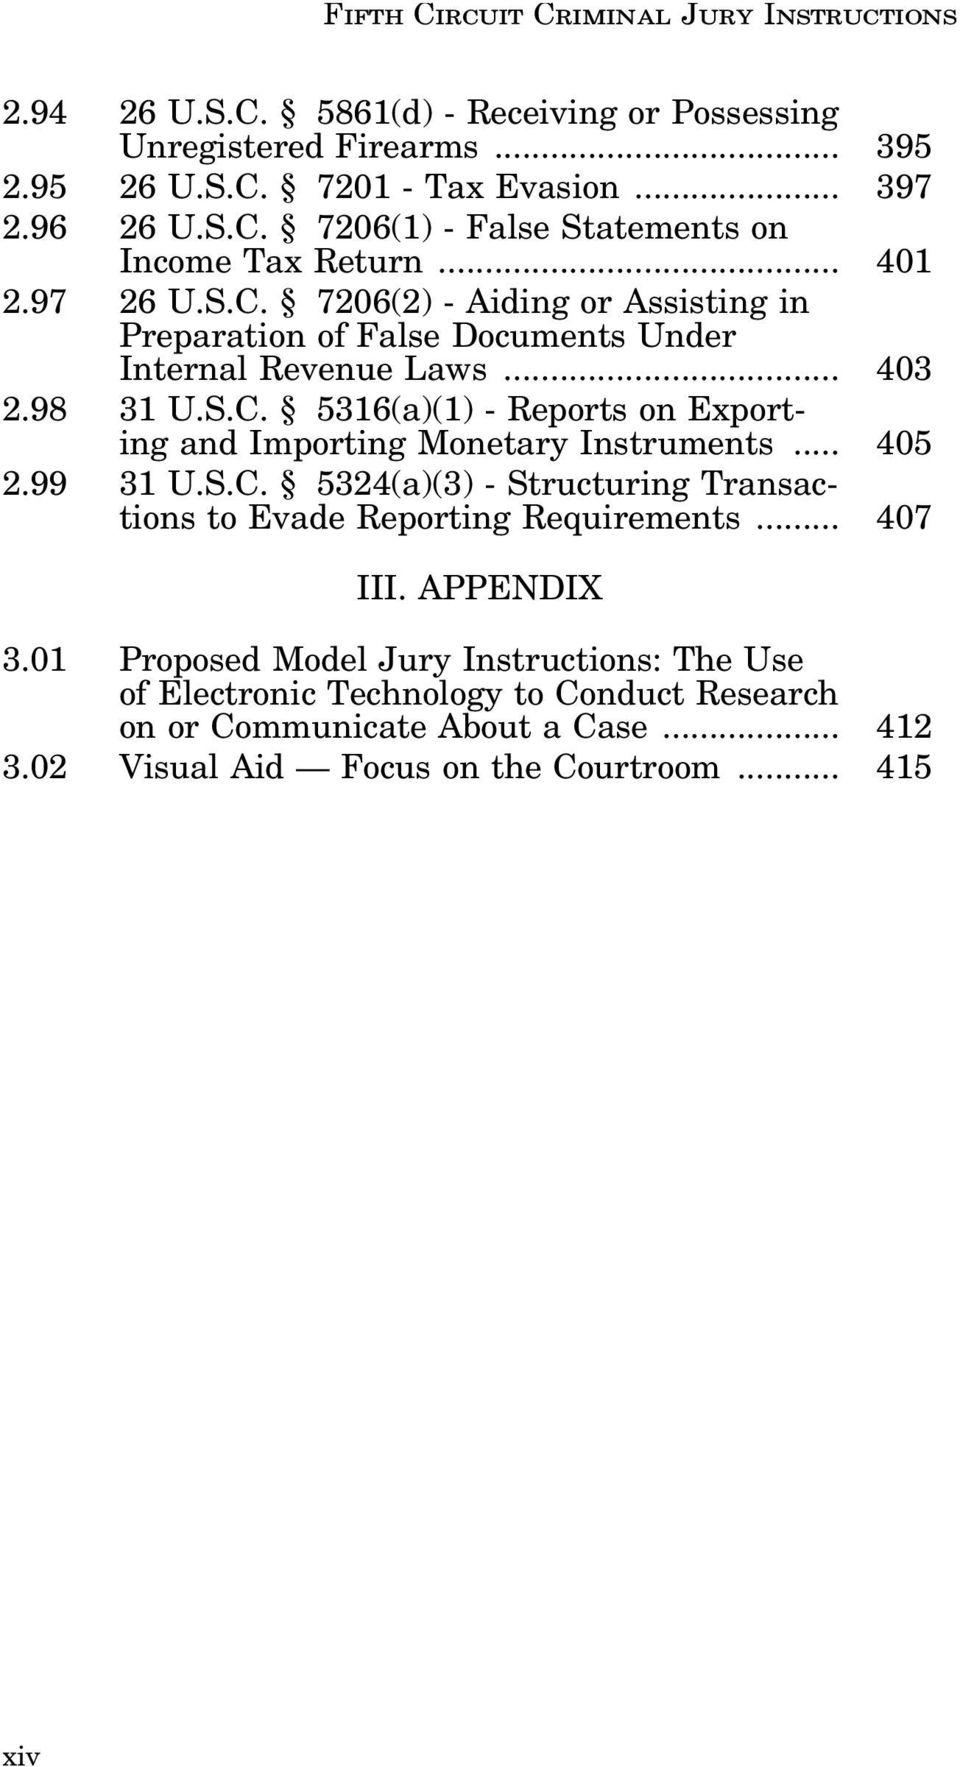 .. 405 2.99 31 U.S.C. 5324(a)(3) - Structuring Transactions to Evade Reporting Requirements... 407 III. APPENDIX 3.